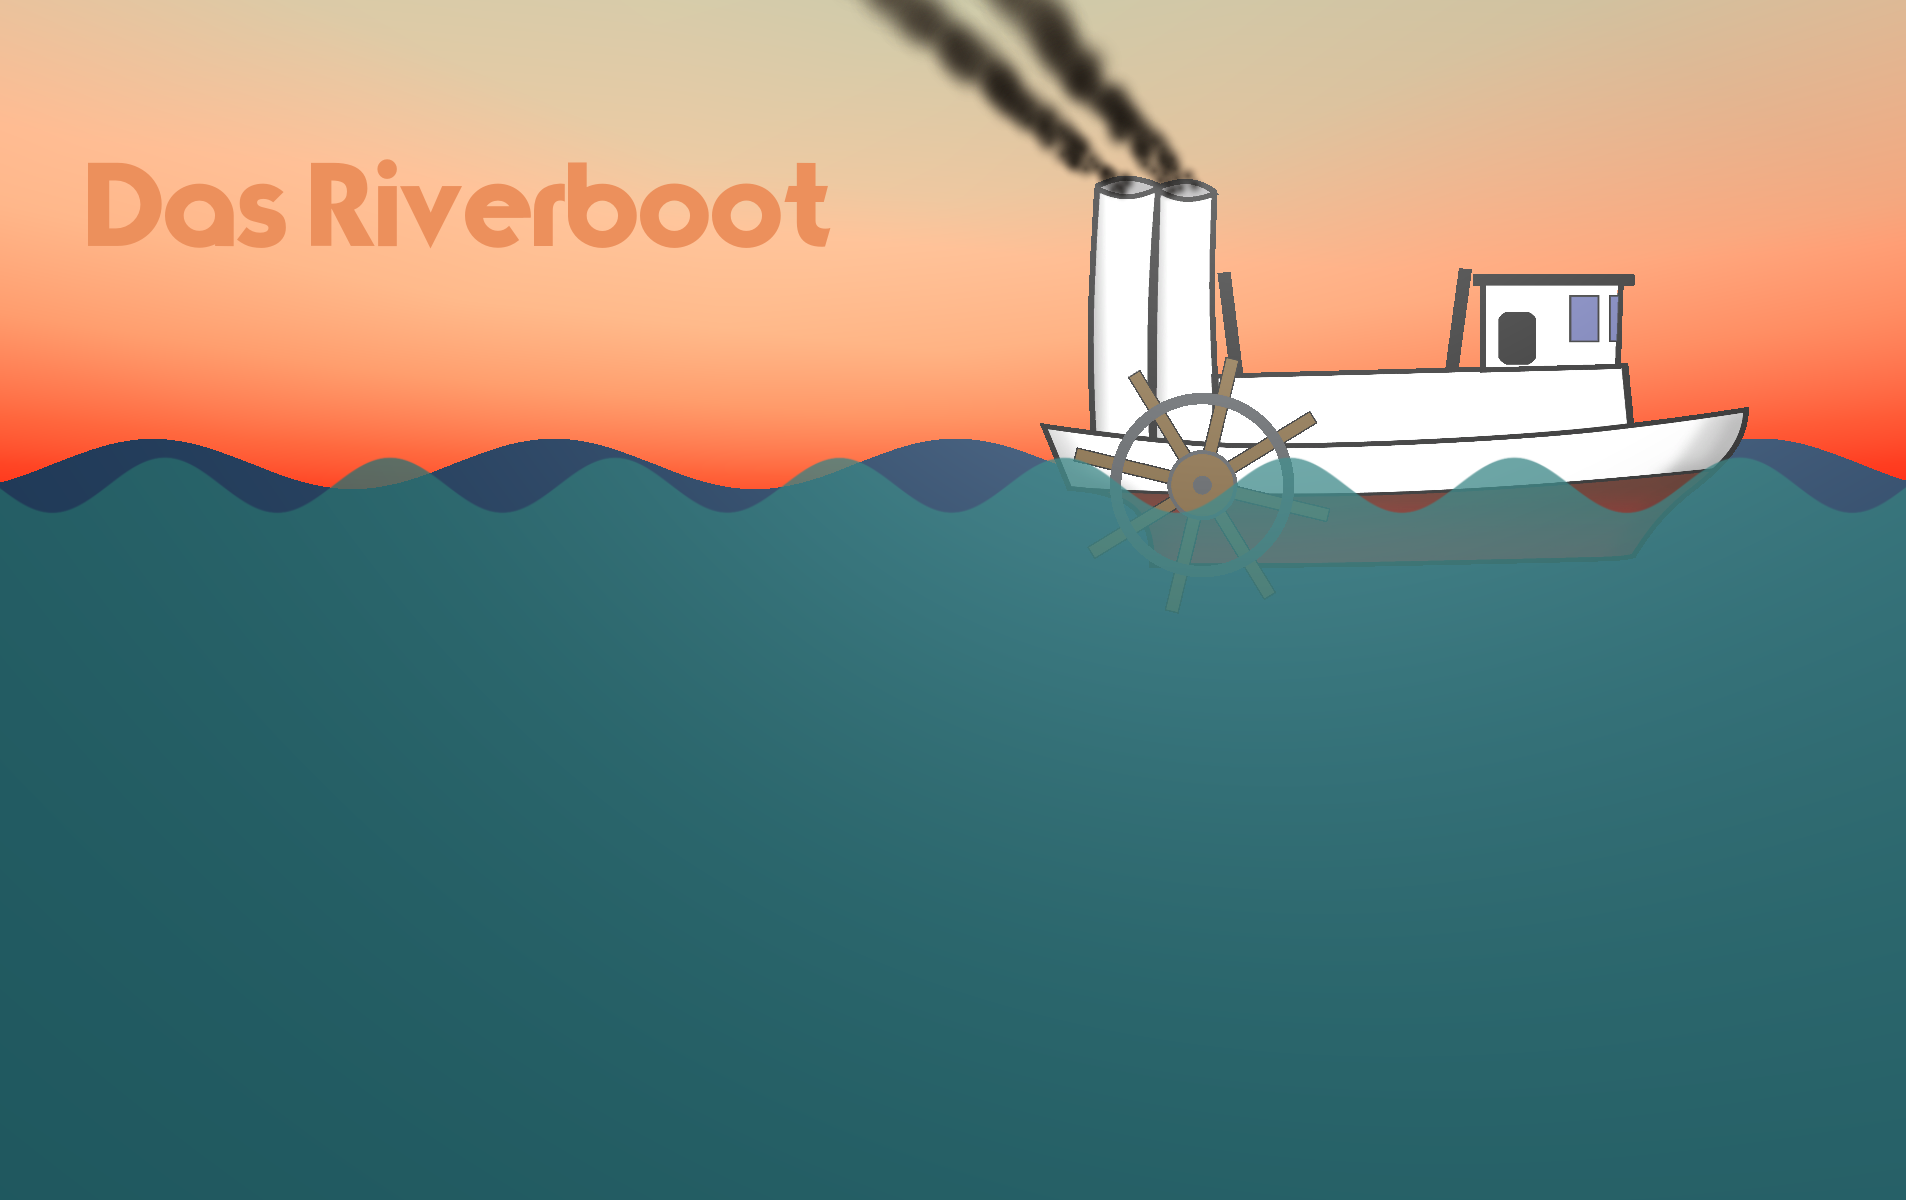 Das Riverboot